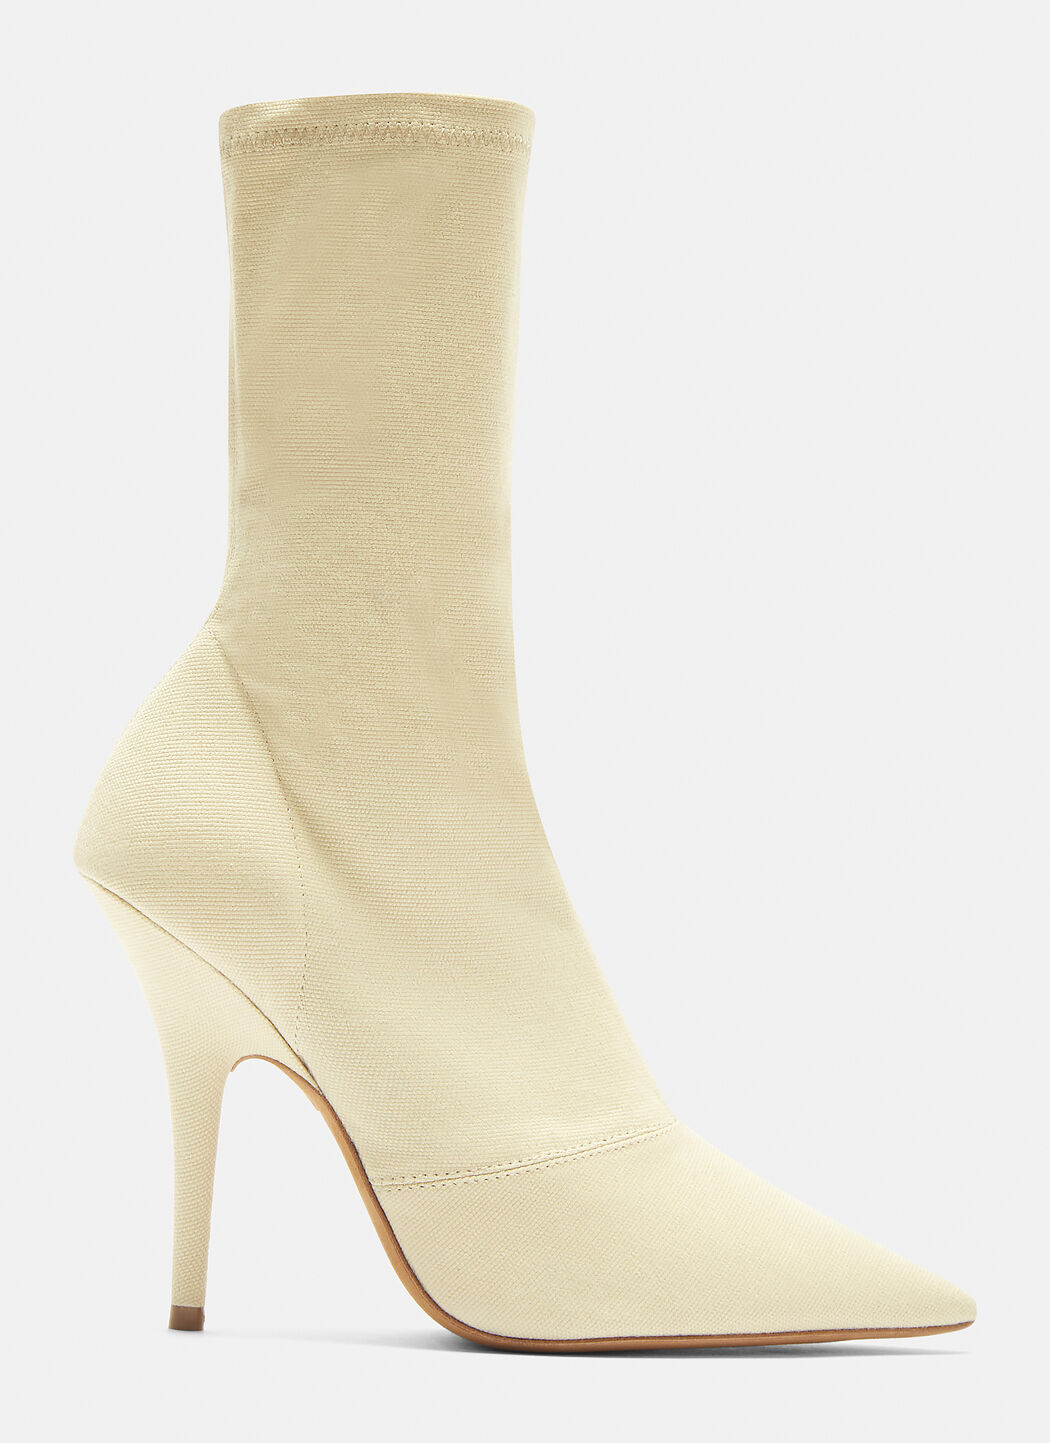 Yeezy Canvas Ankle Boot 110mm Heel in Chalk